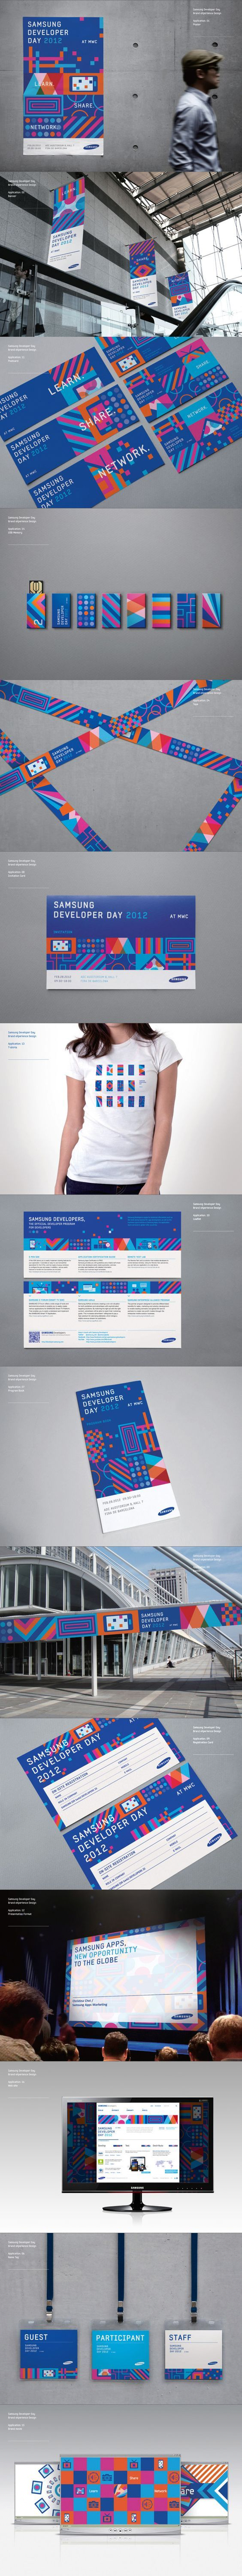 Samsung Developers Branding on Behance | Fivestar Branding – Design and…